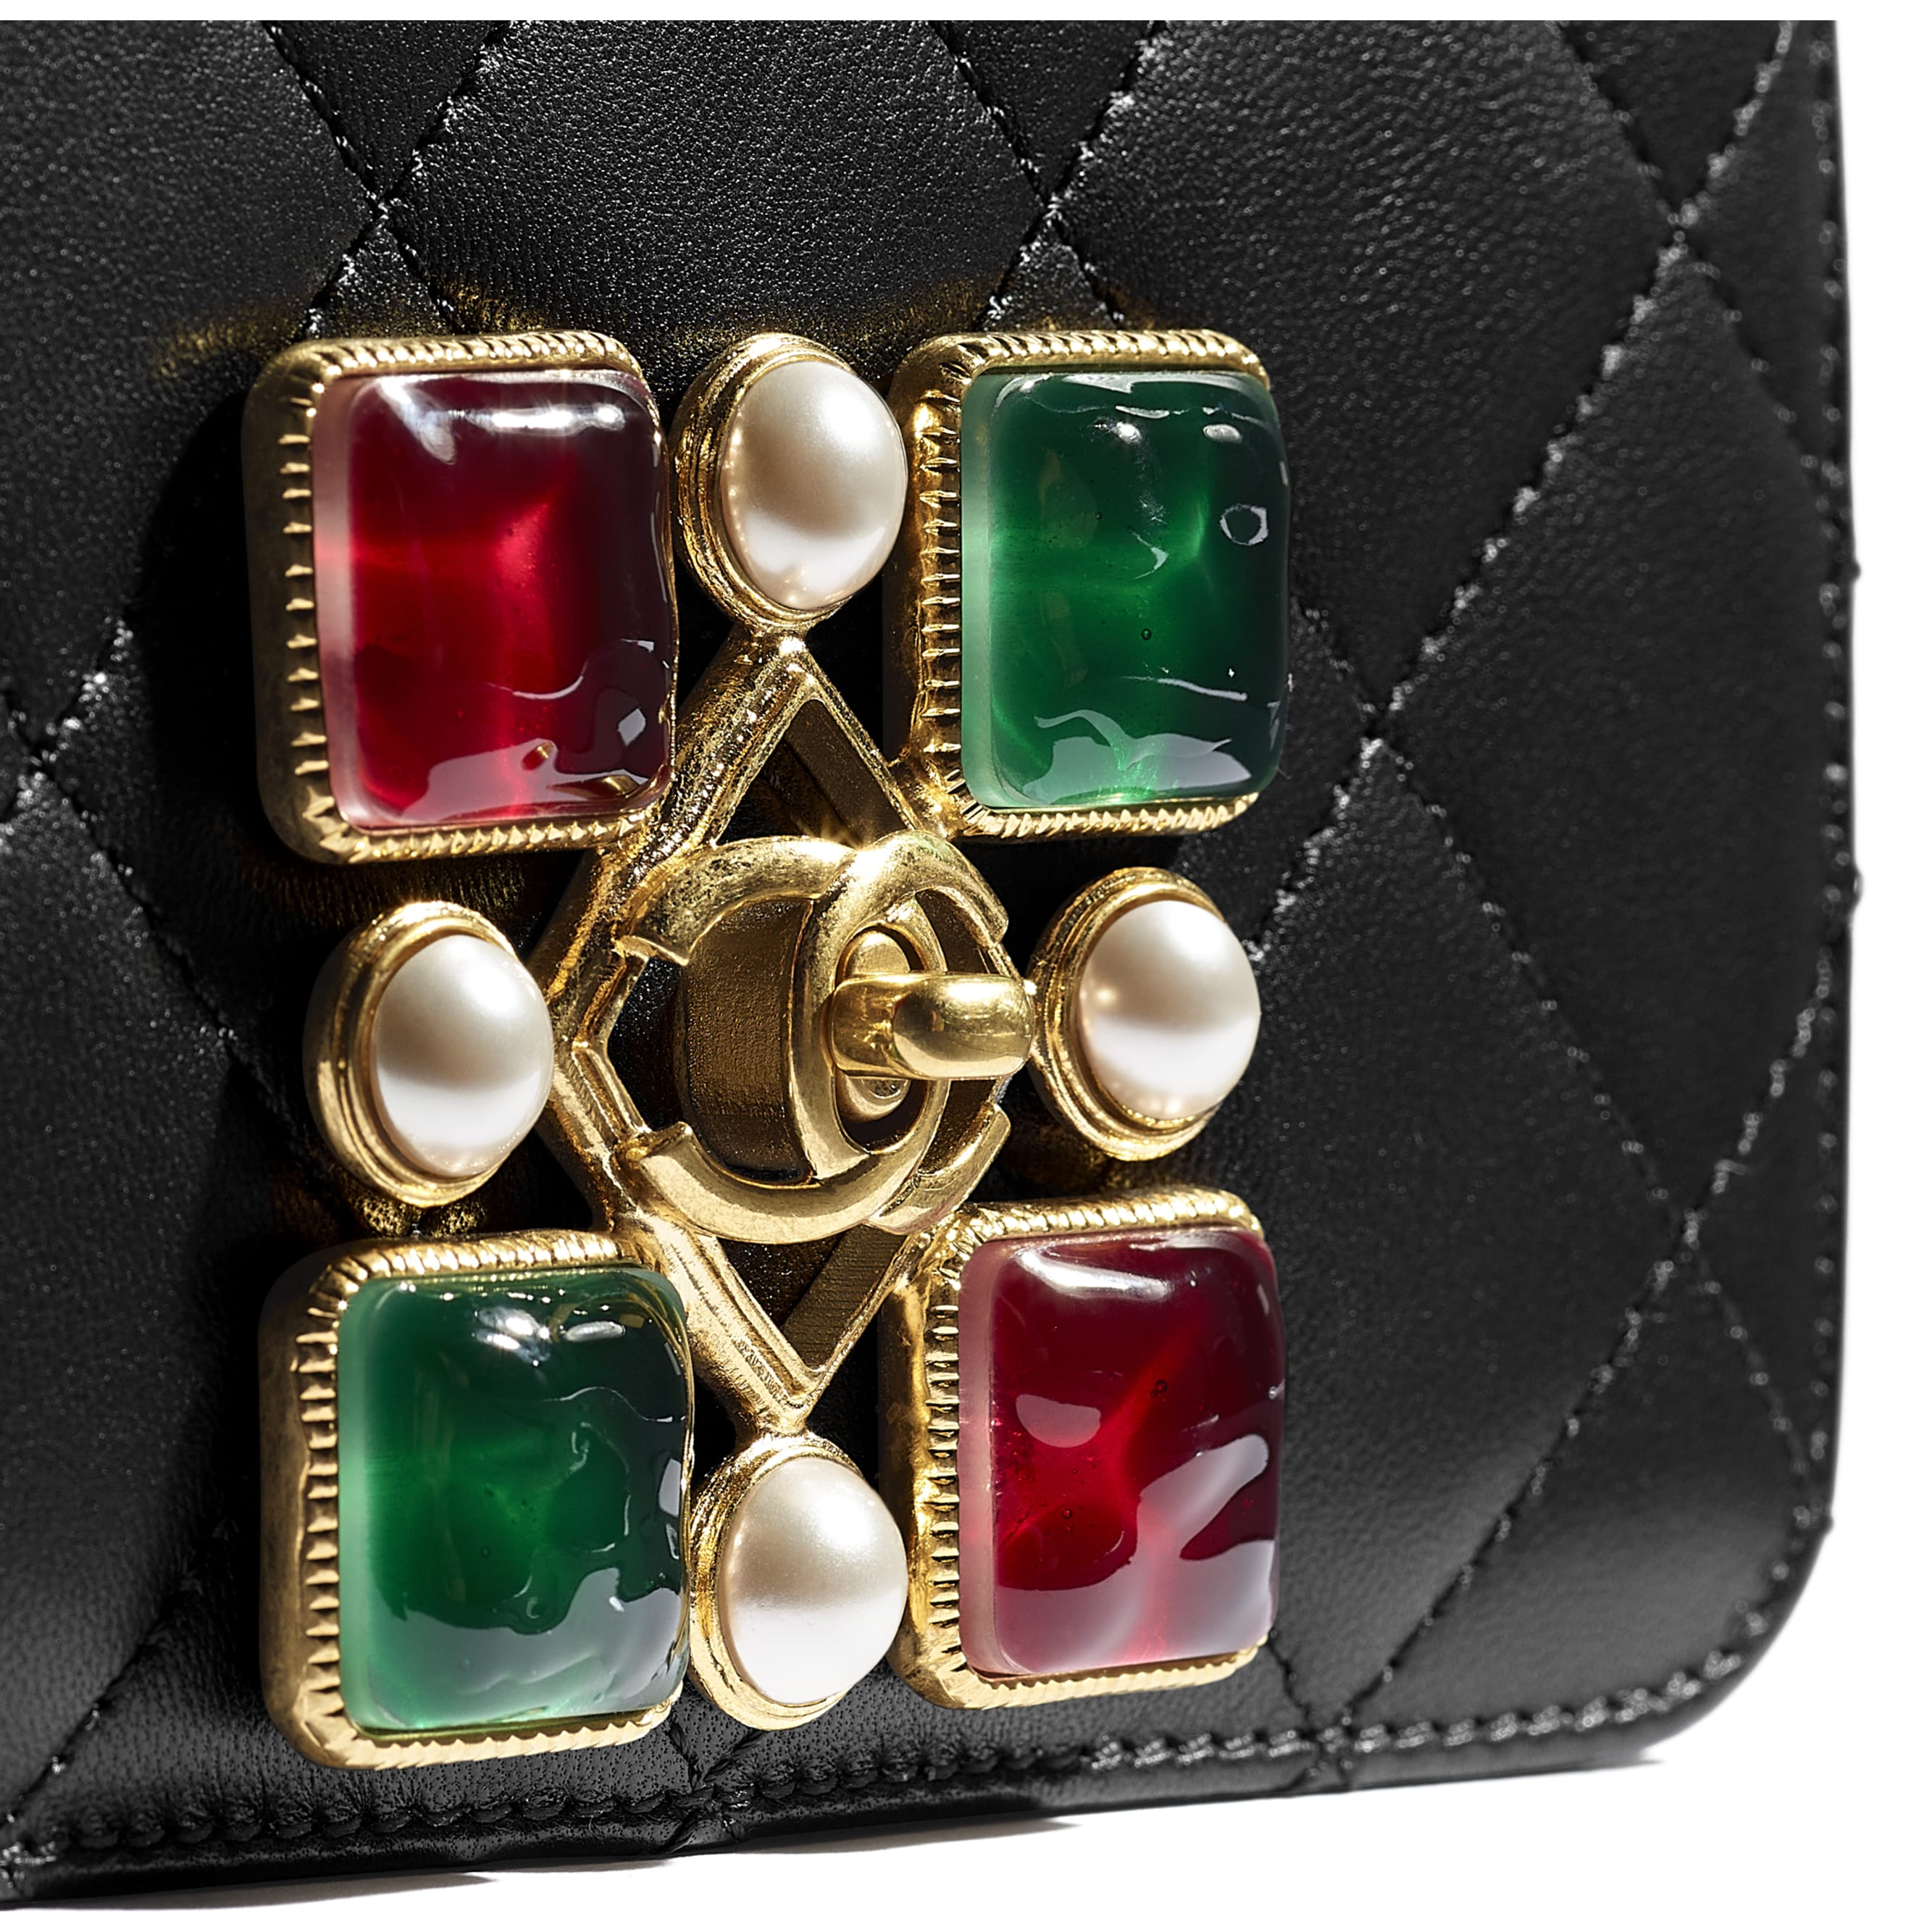 Small Flap Bag - Black - Calfskin, Crystal Pearls, Resin & Gold-Tone Metal - CHANEL - Extra view - see standard sized version